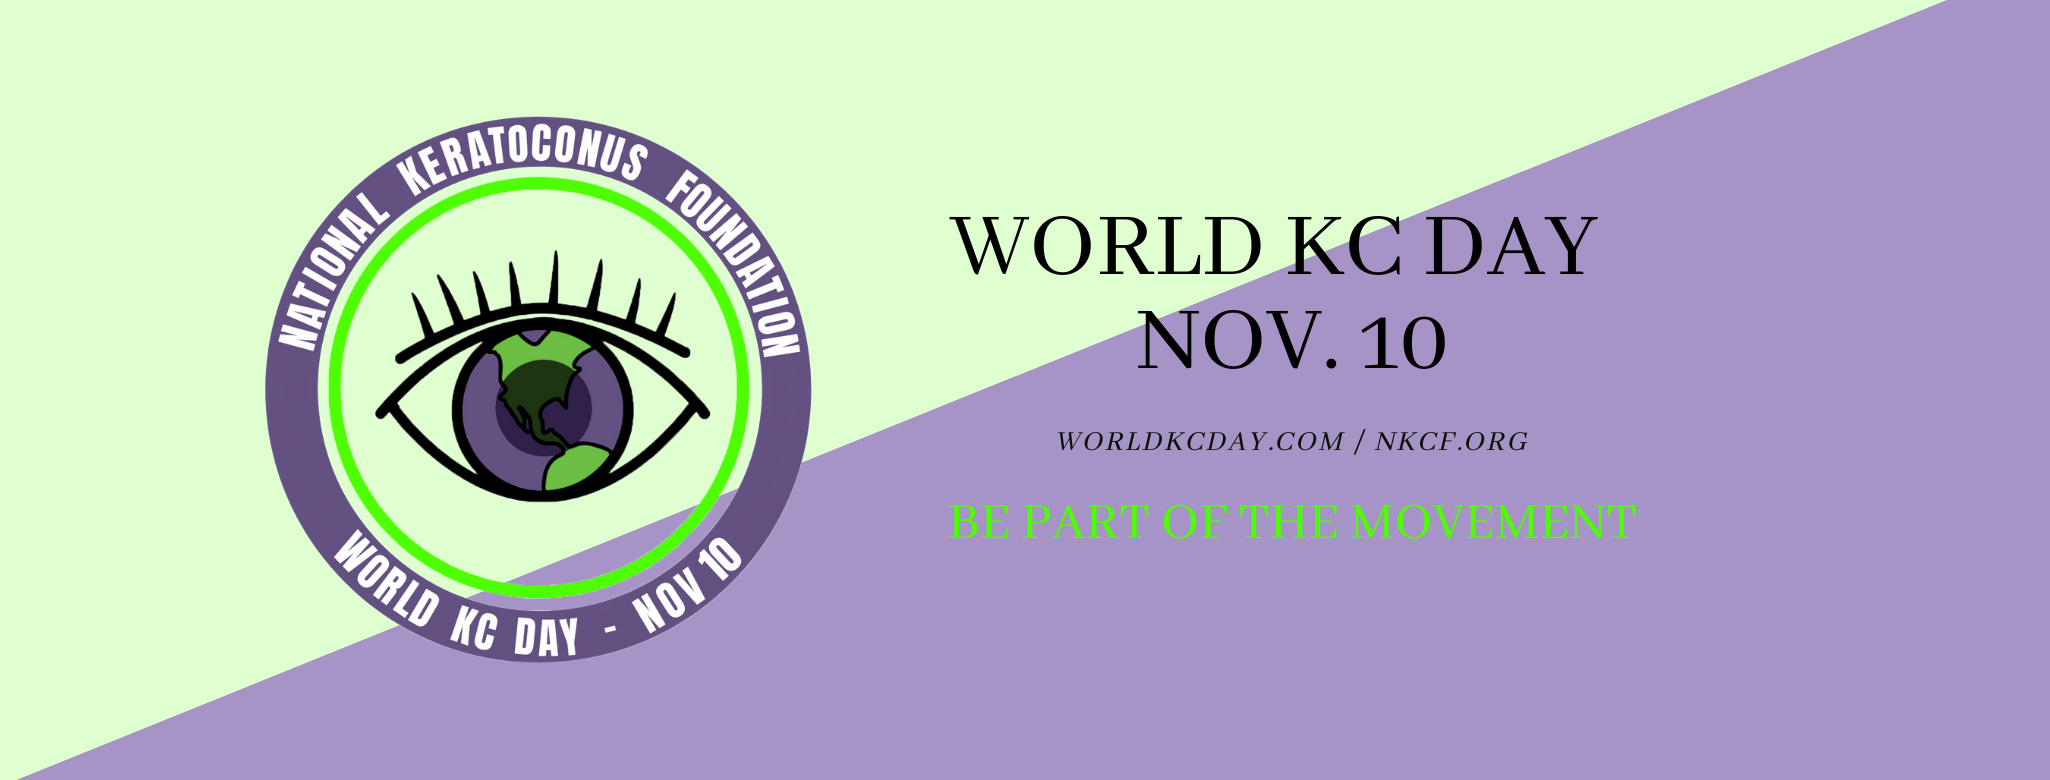 world kc day banner two tone